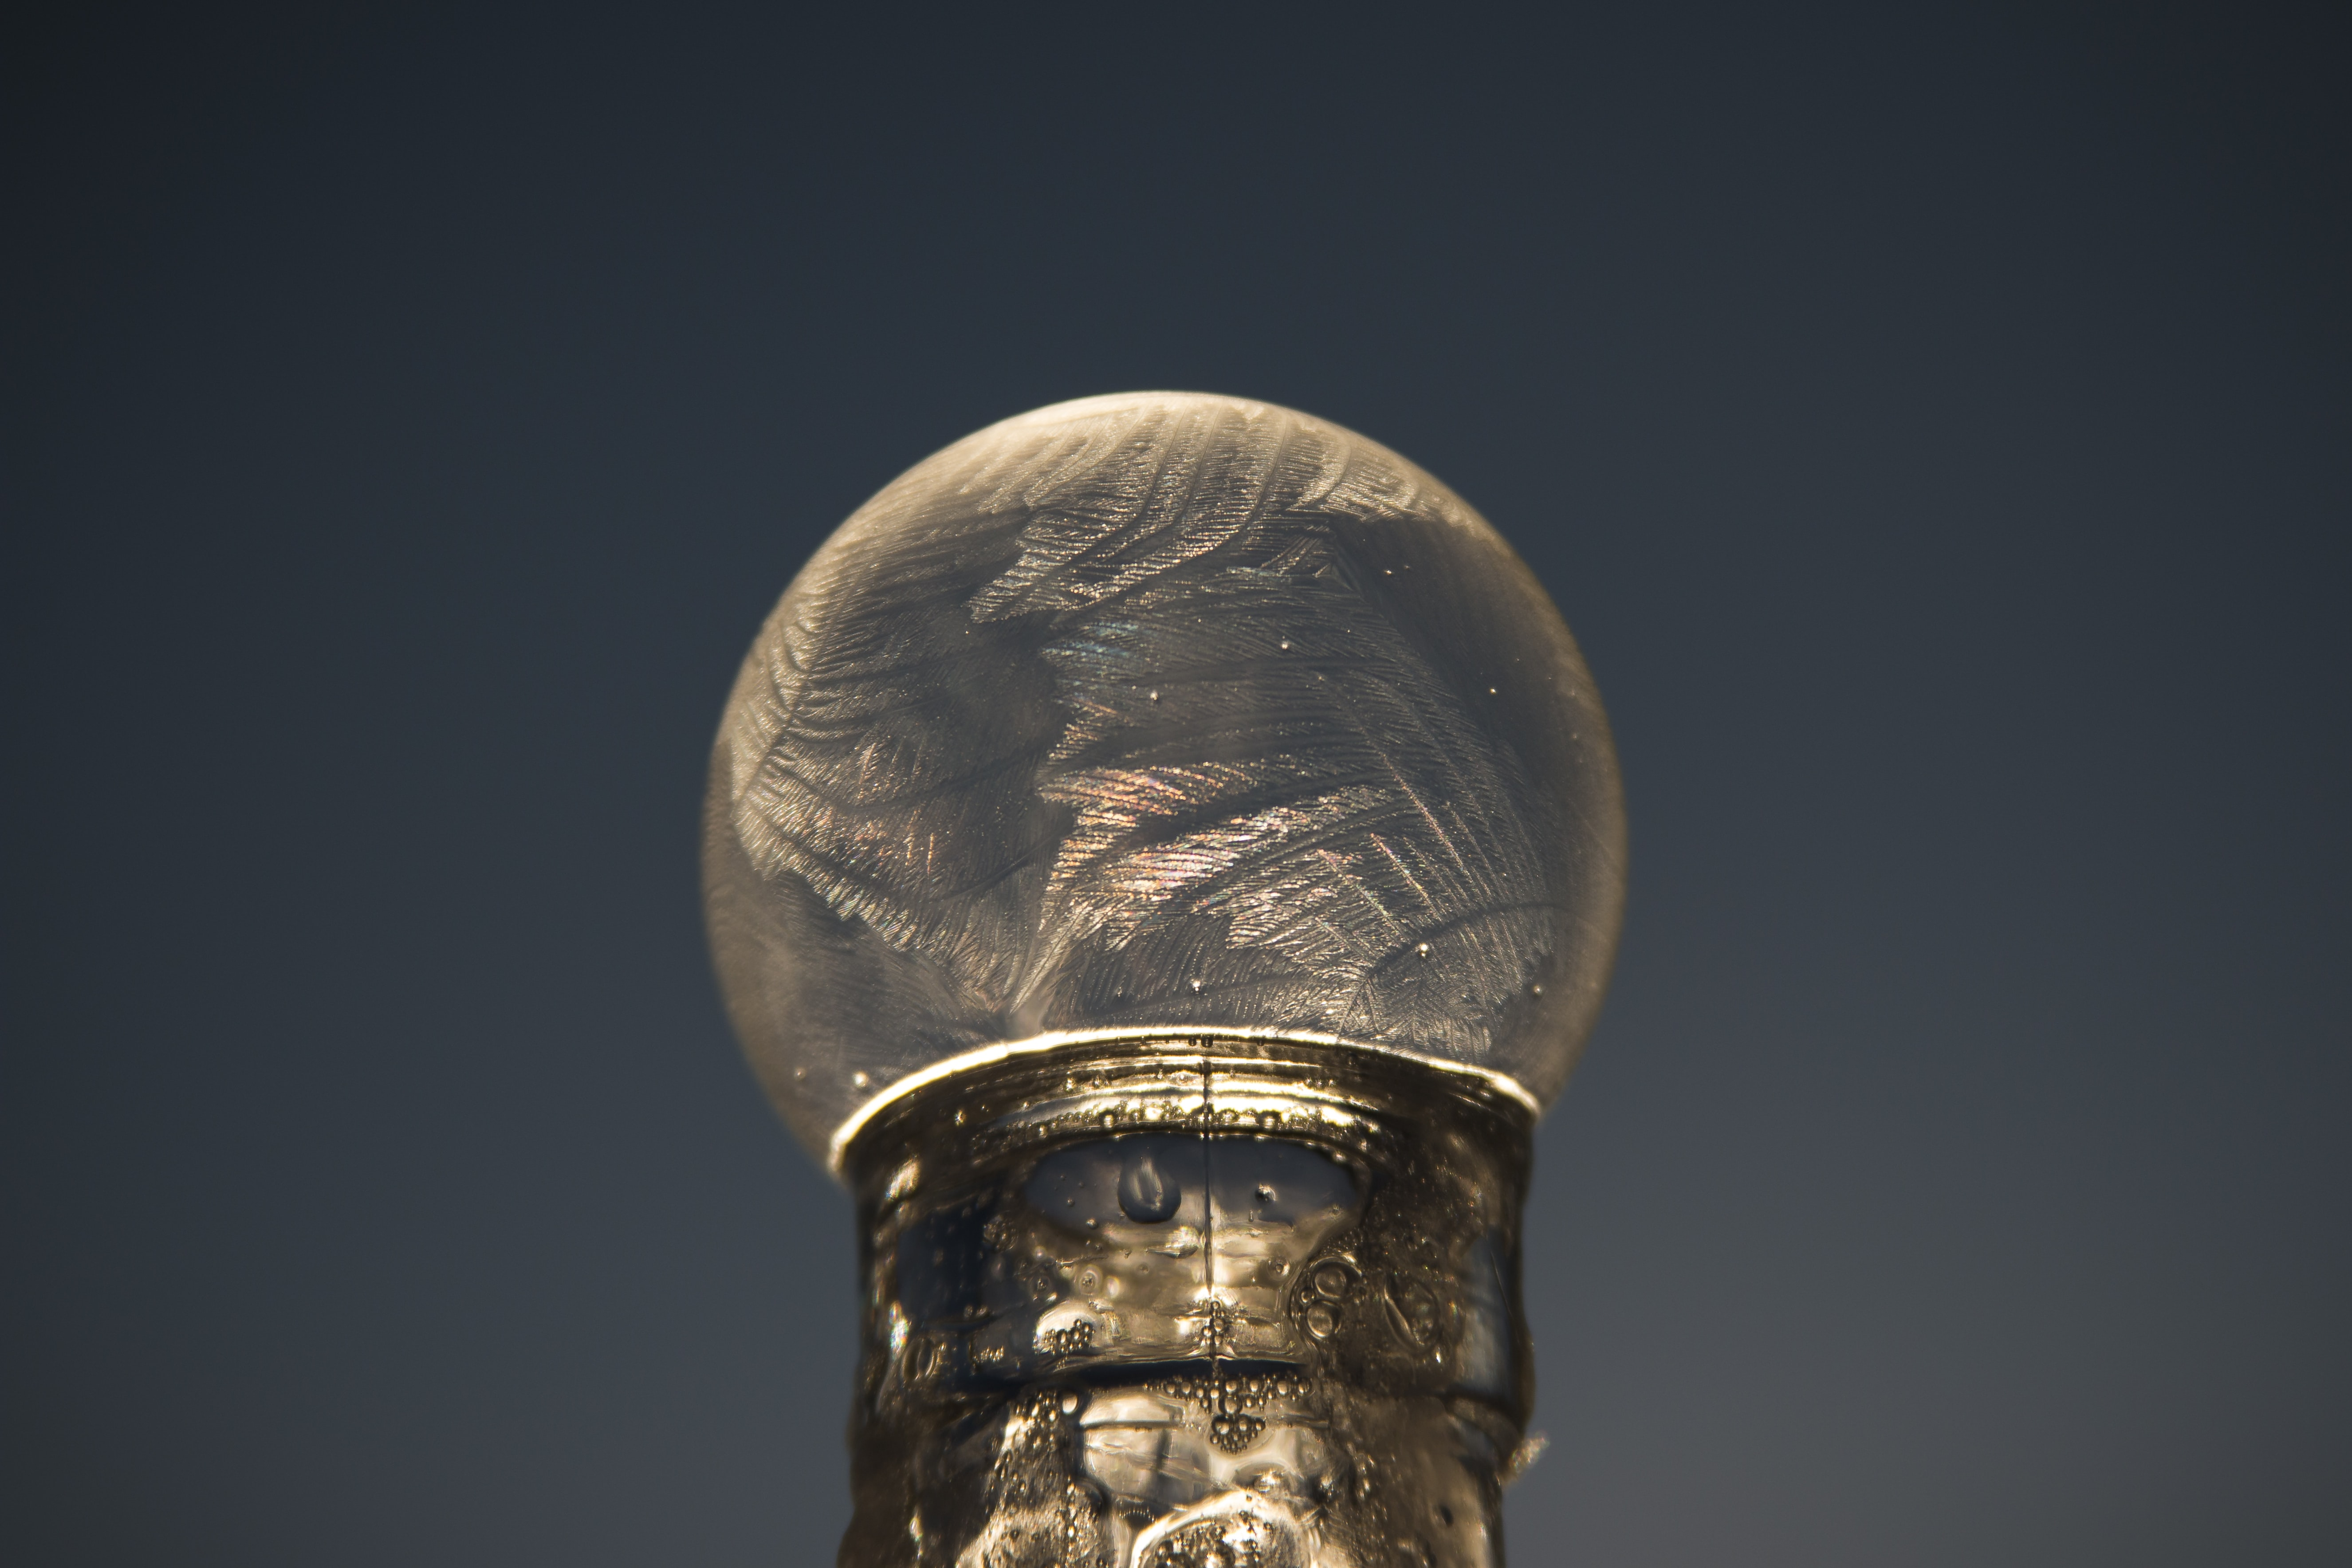 Close-up of a frozen bubble atop a bottle at Billings, Montana, seen against a clear sky